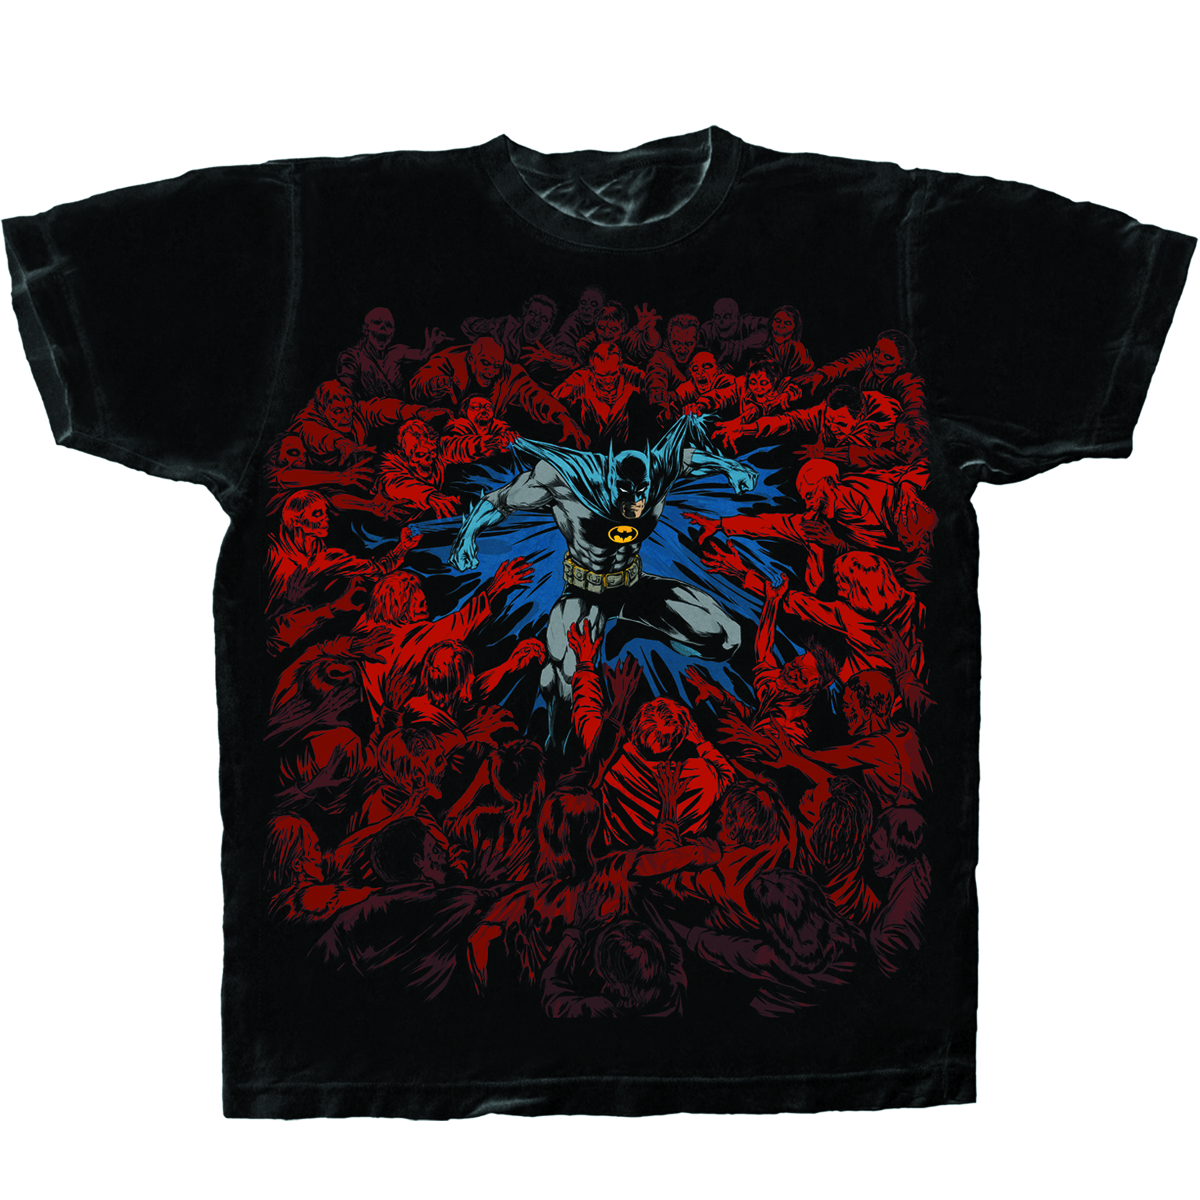 BATMAN DEFENSE BLK T/S MED